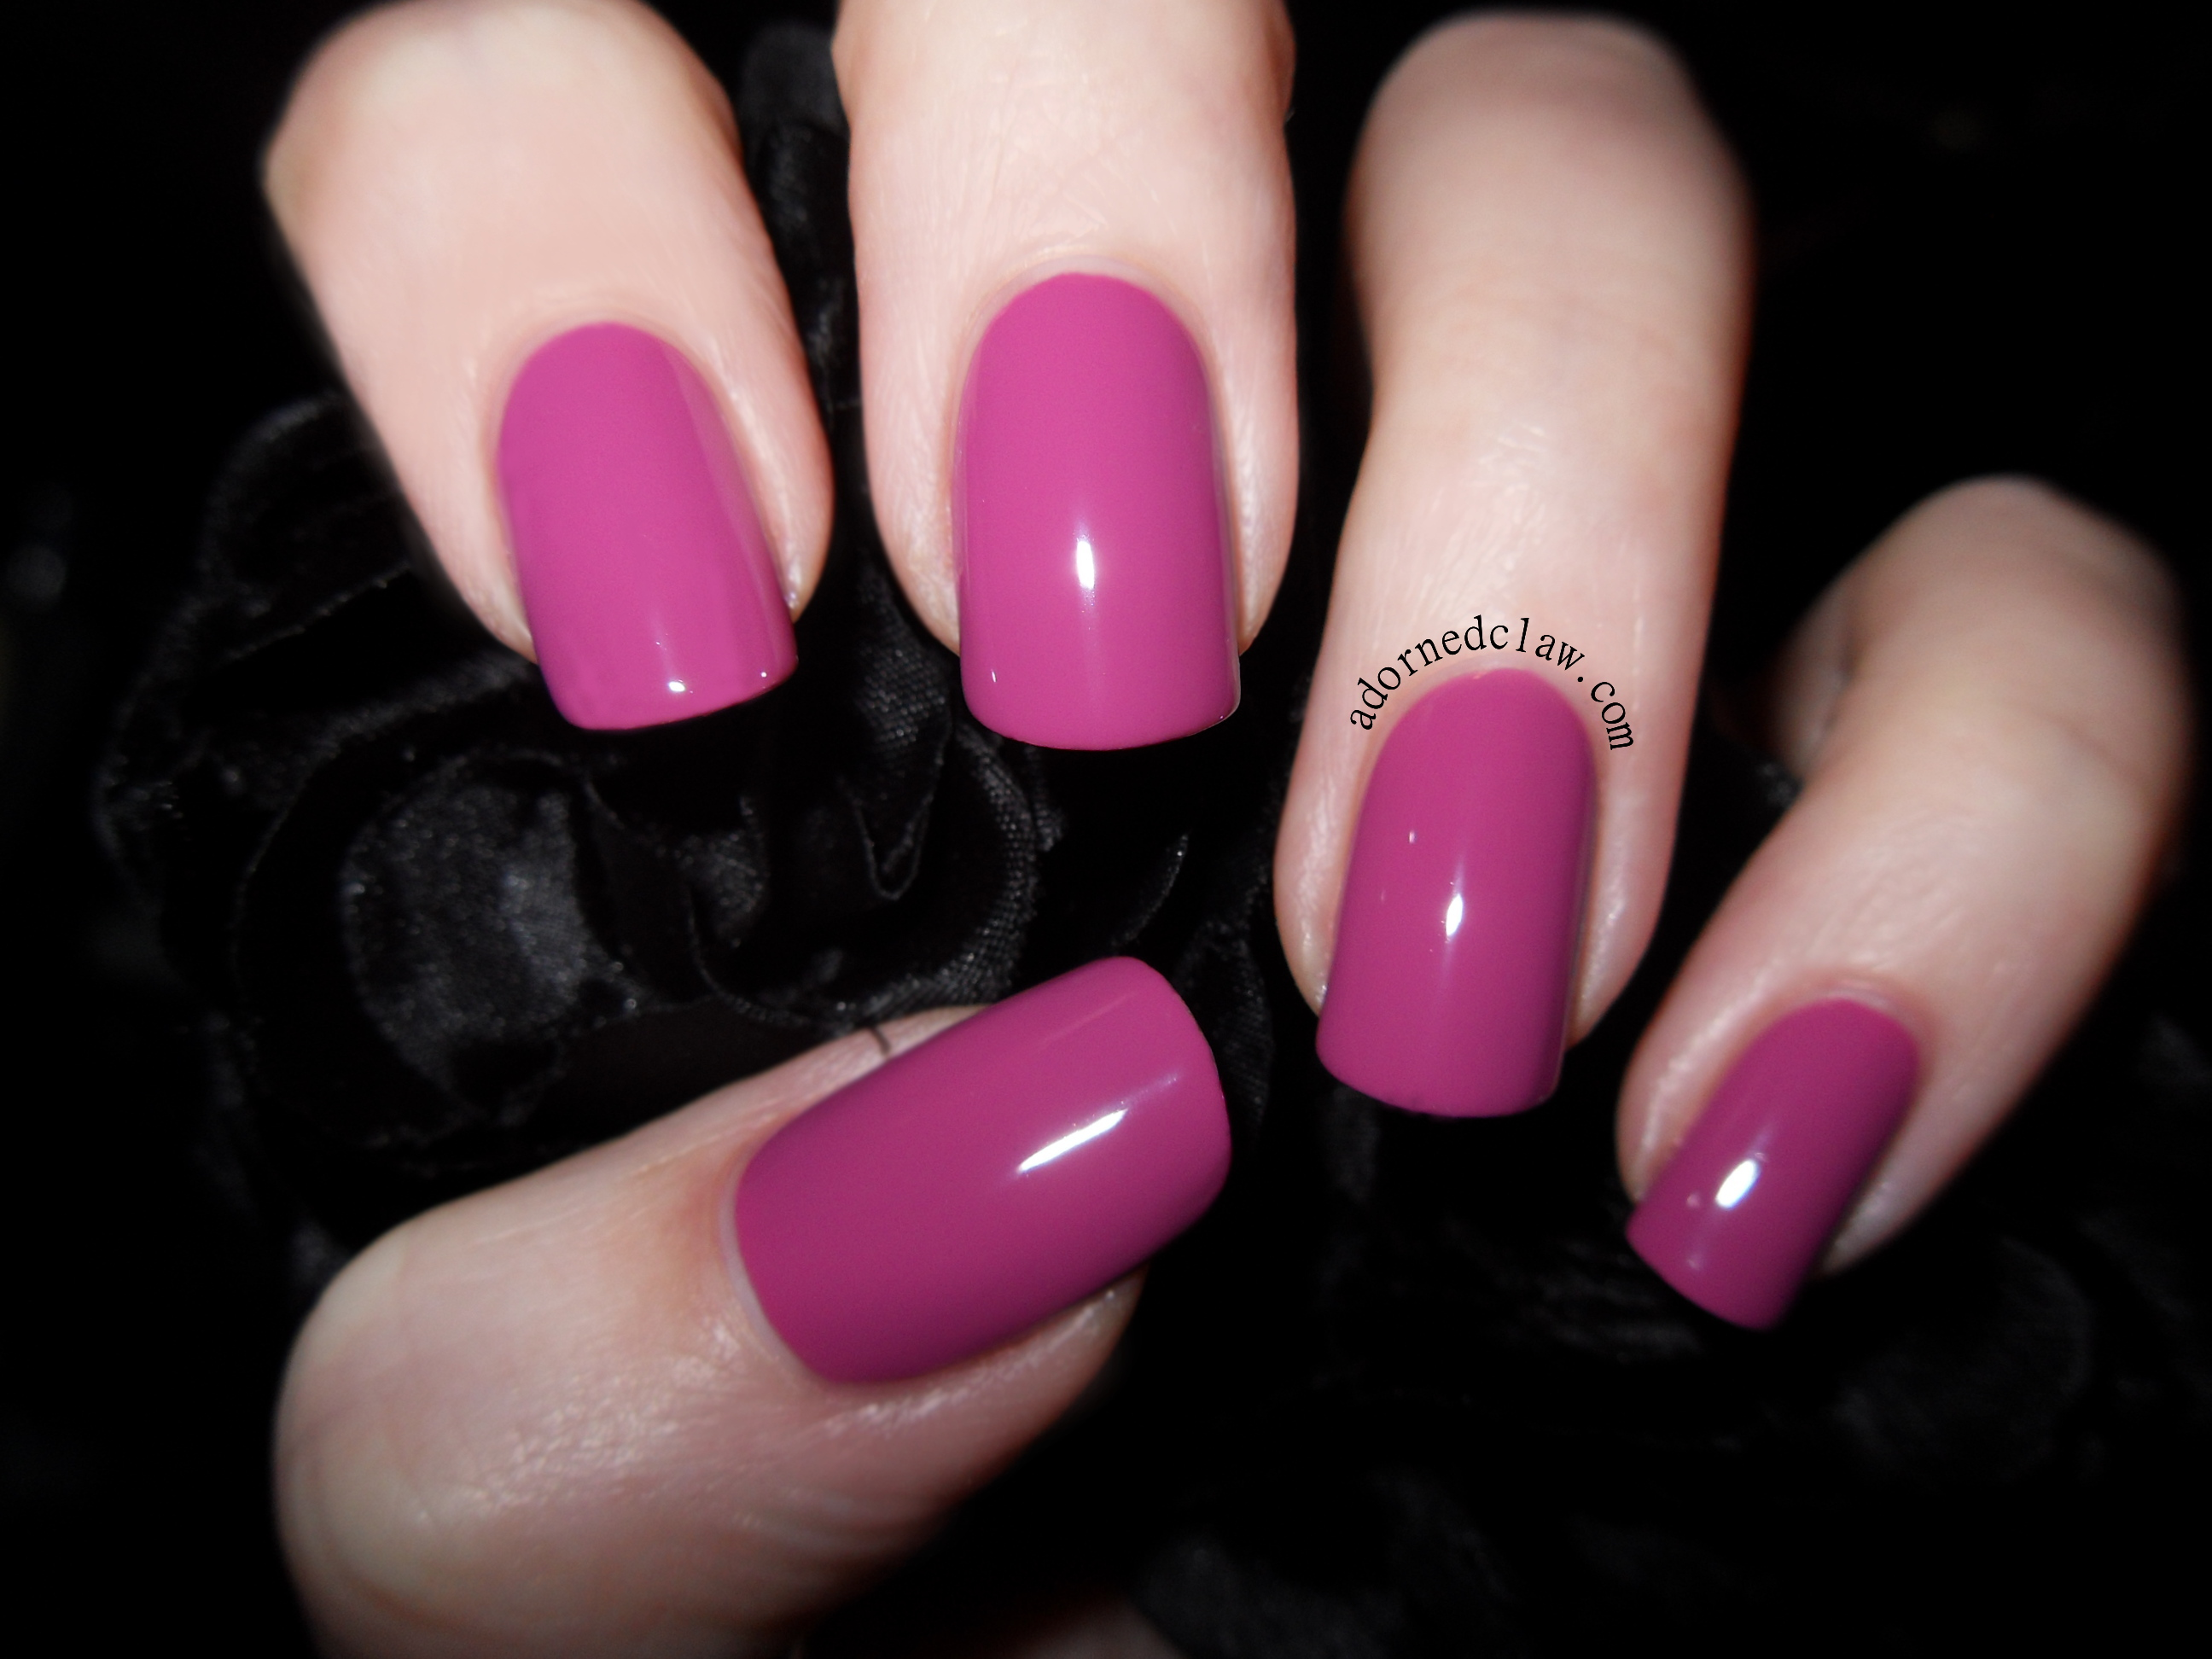 Nail polish | The Adorned Claw | Page 33